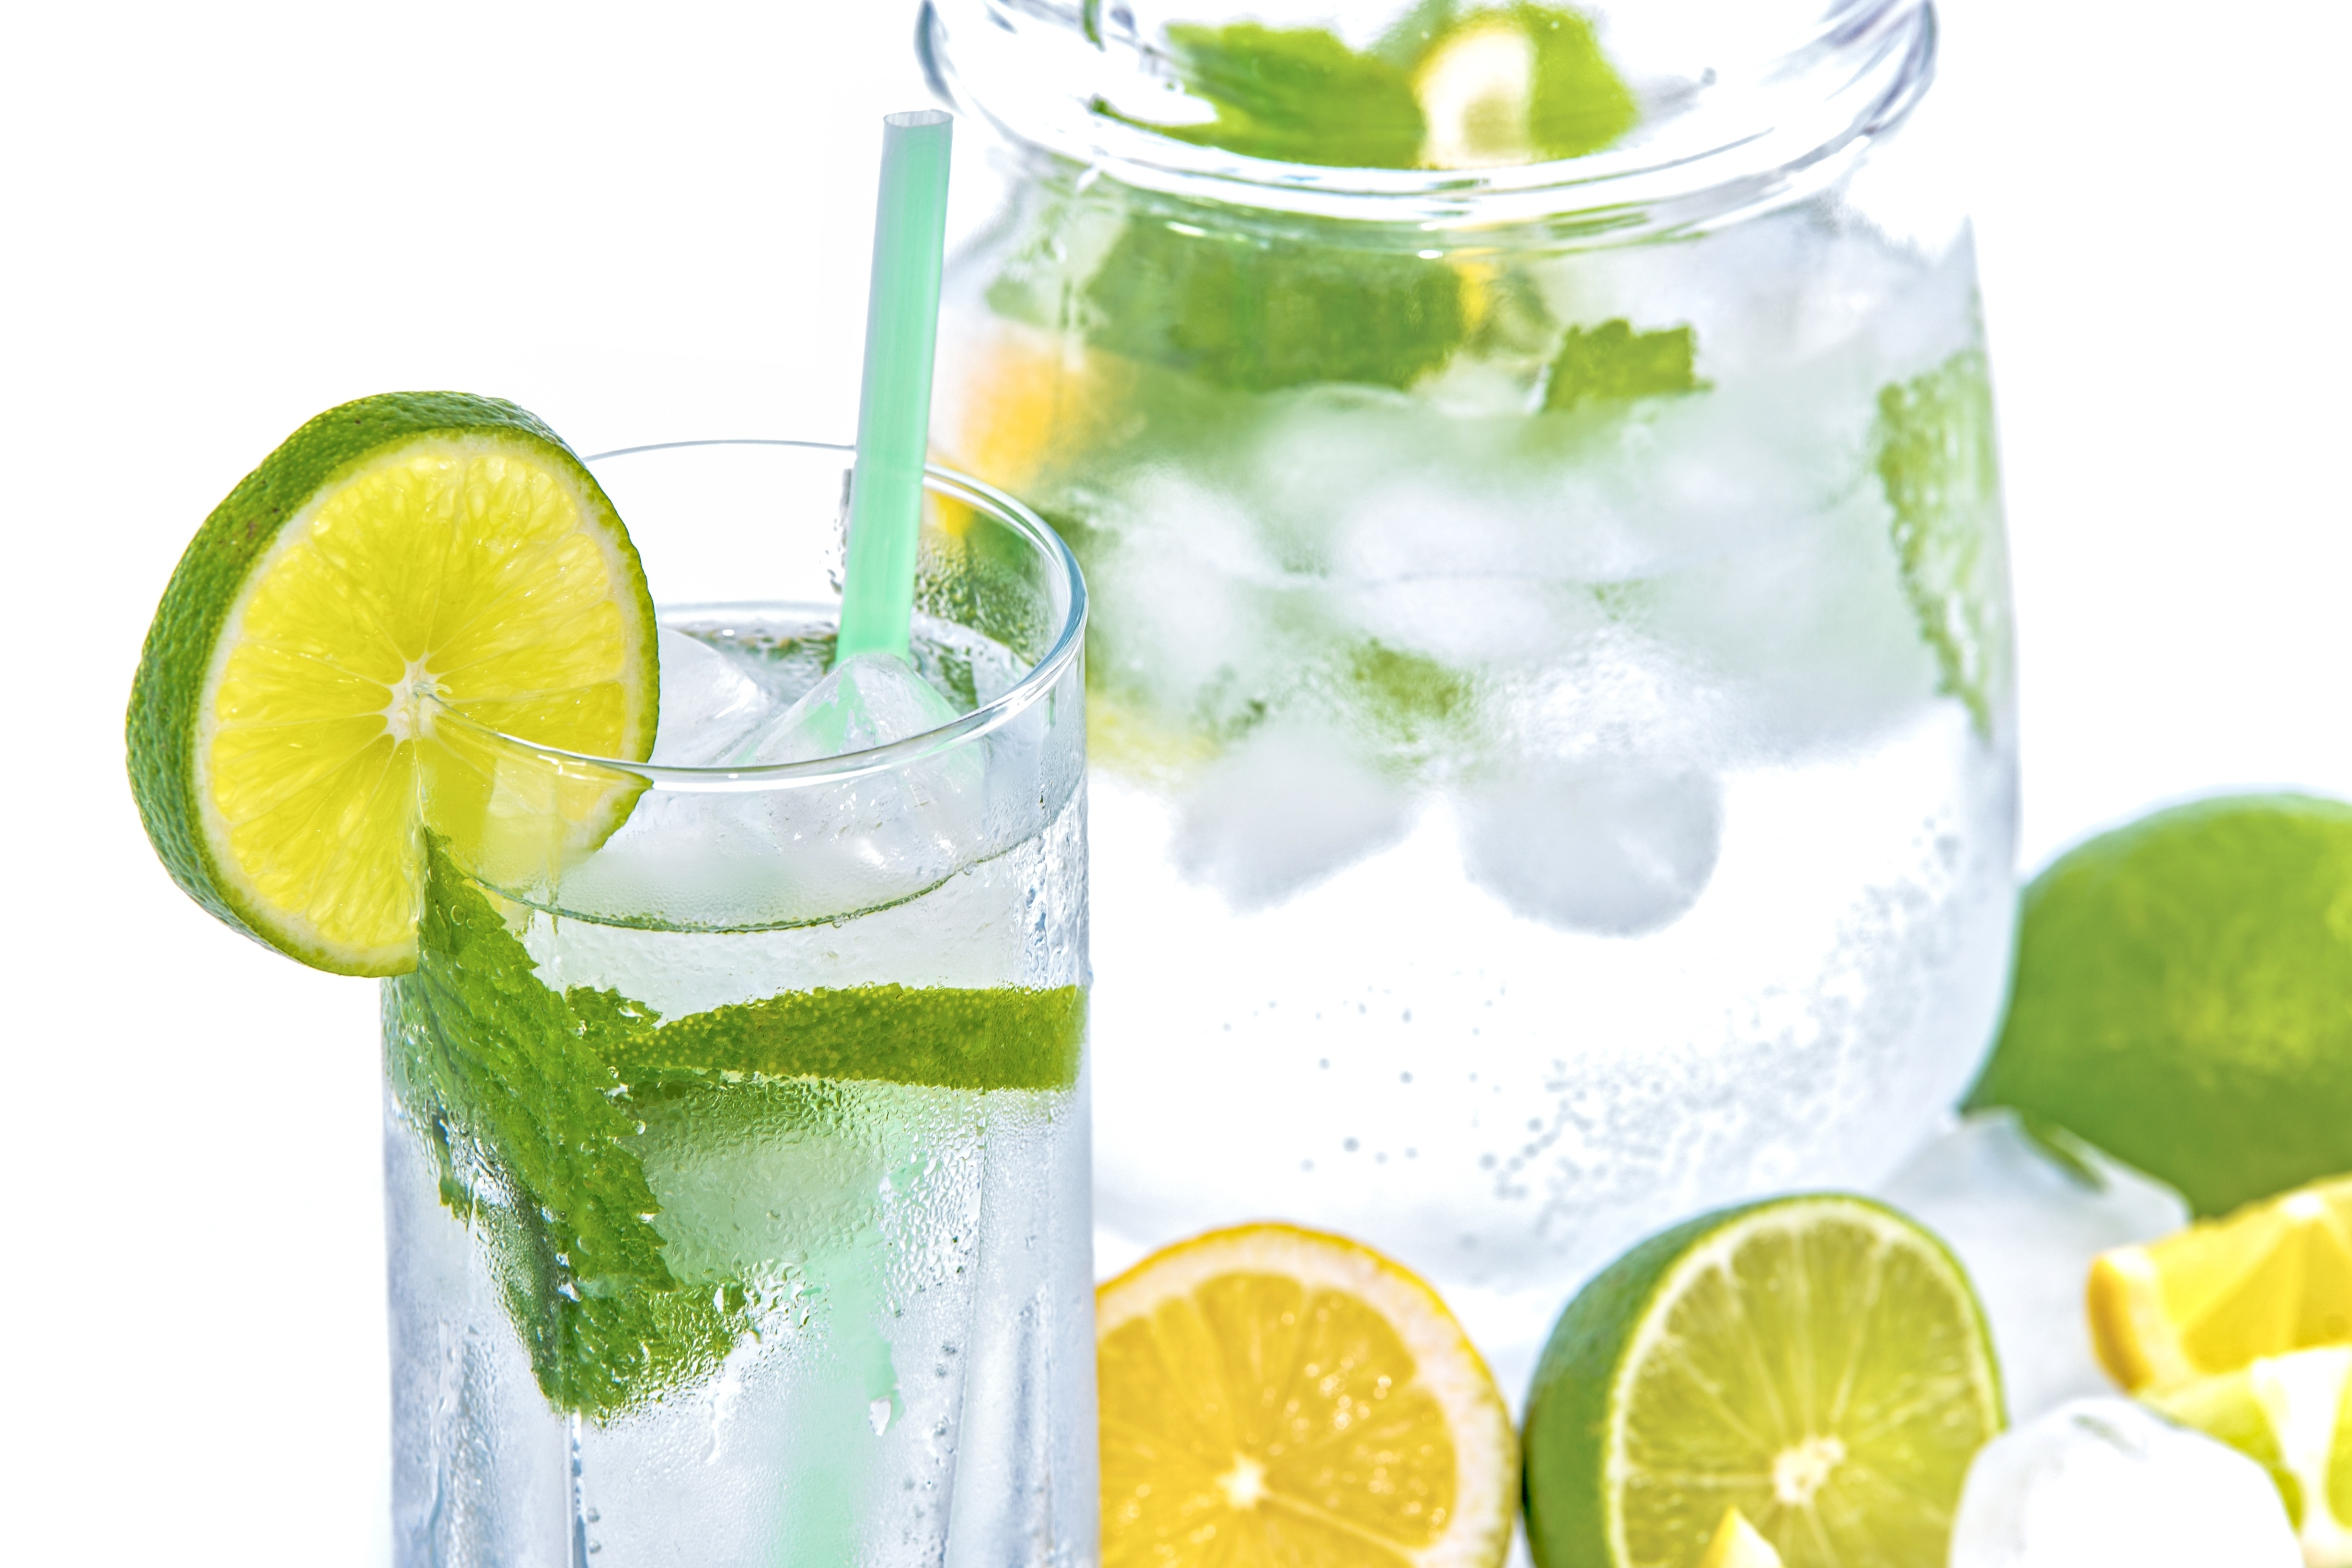 Lime_Drinks_Lemonade_Highball_glass_521979_4500x3000